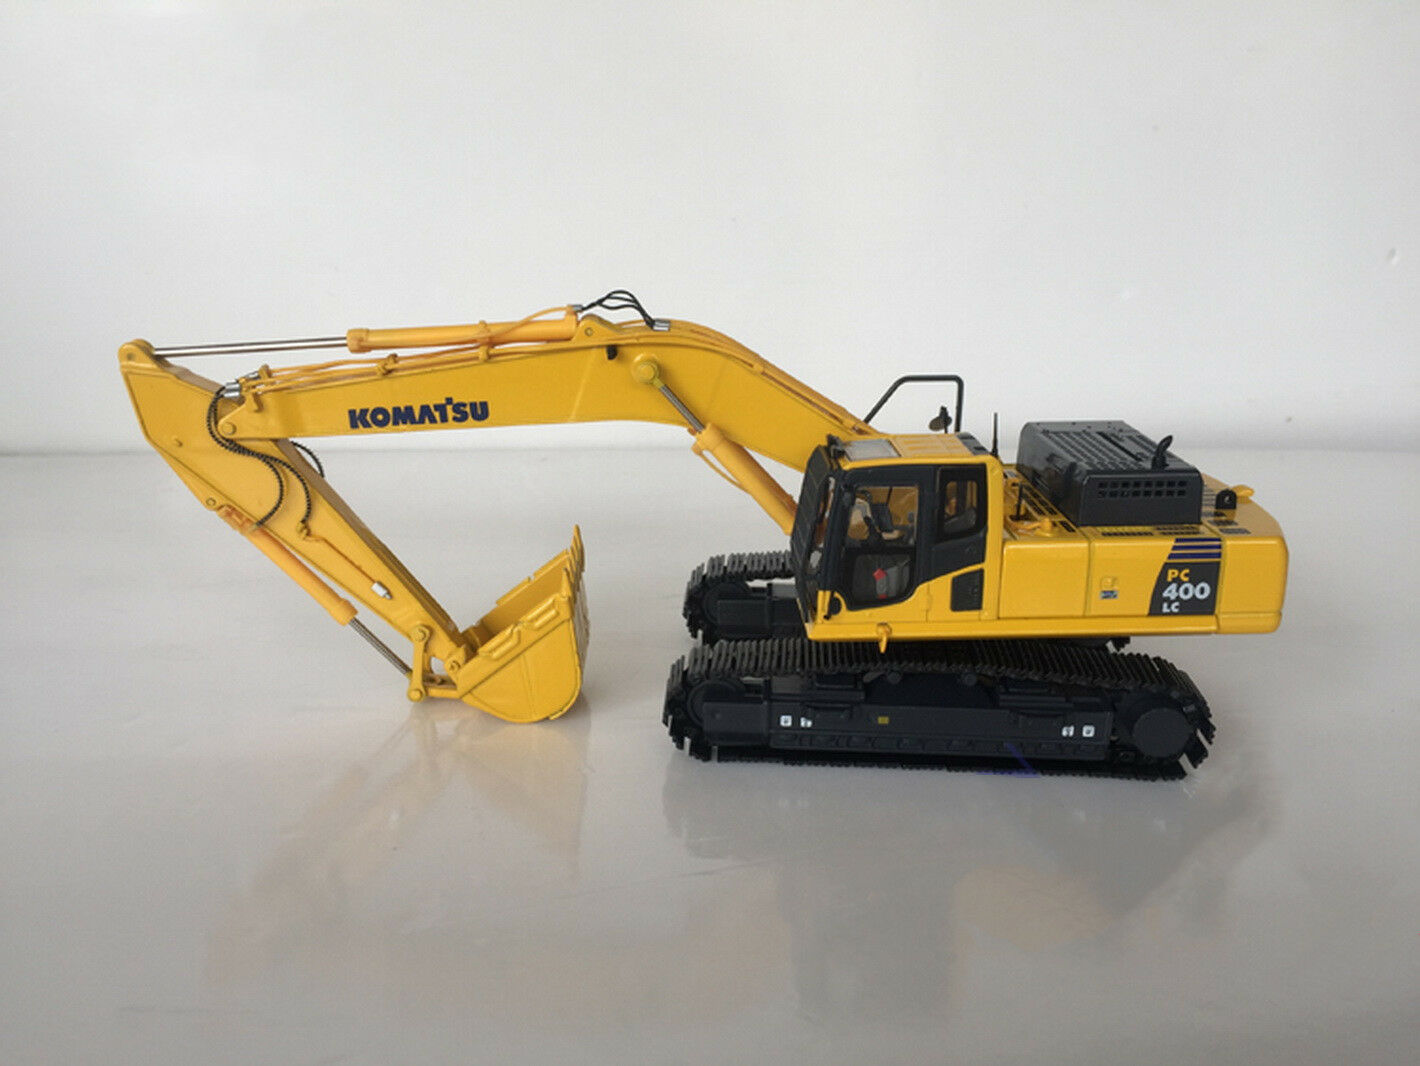 1 50 KOMATSU PC400LC-8 Excavator Metal Tracks Diecast Model Juguete